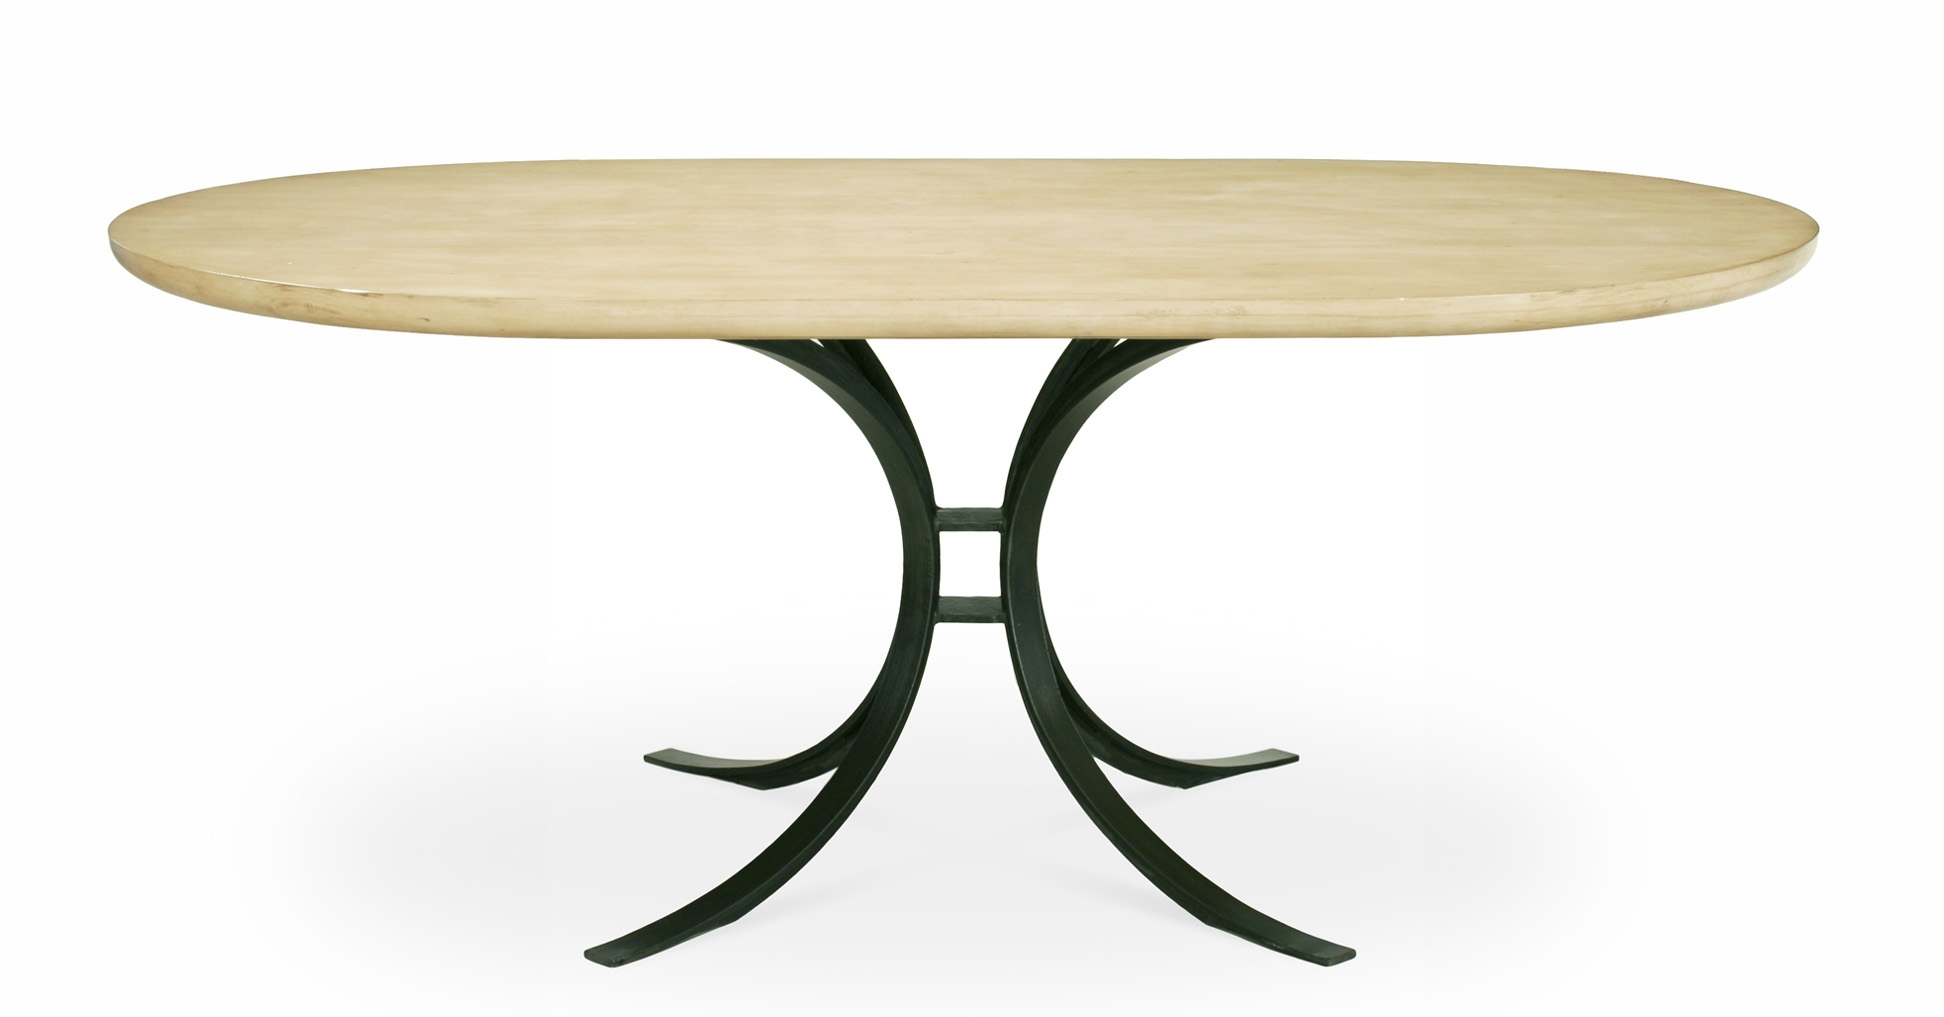 Oval Dining Tables For Sale Pertaining To Preferred Quincy Oval Dining Table For Sale – Cottage & Bungalow (View 8 of 25)